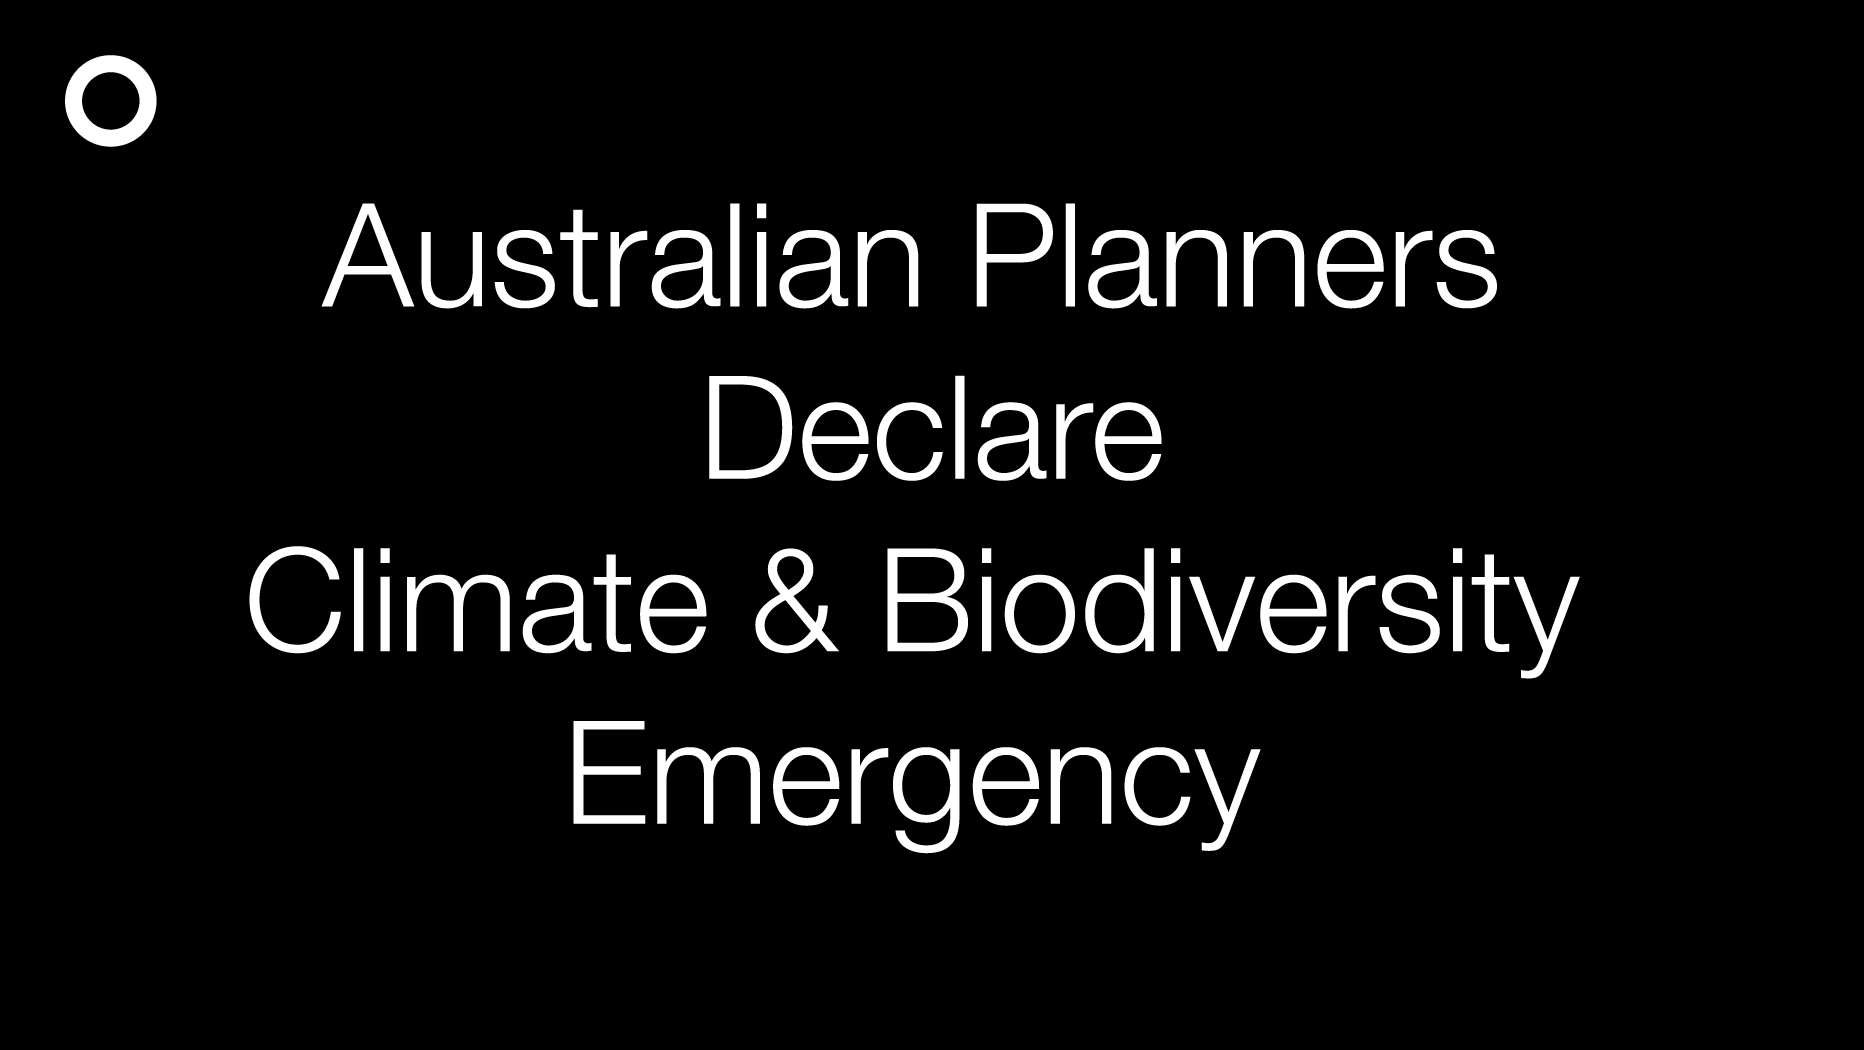 Australian Planners Declare Climate and Biodiversity Emergency